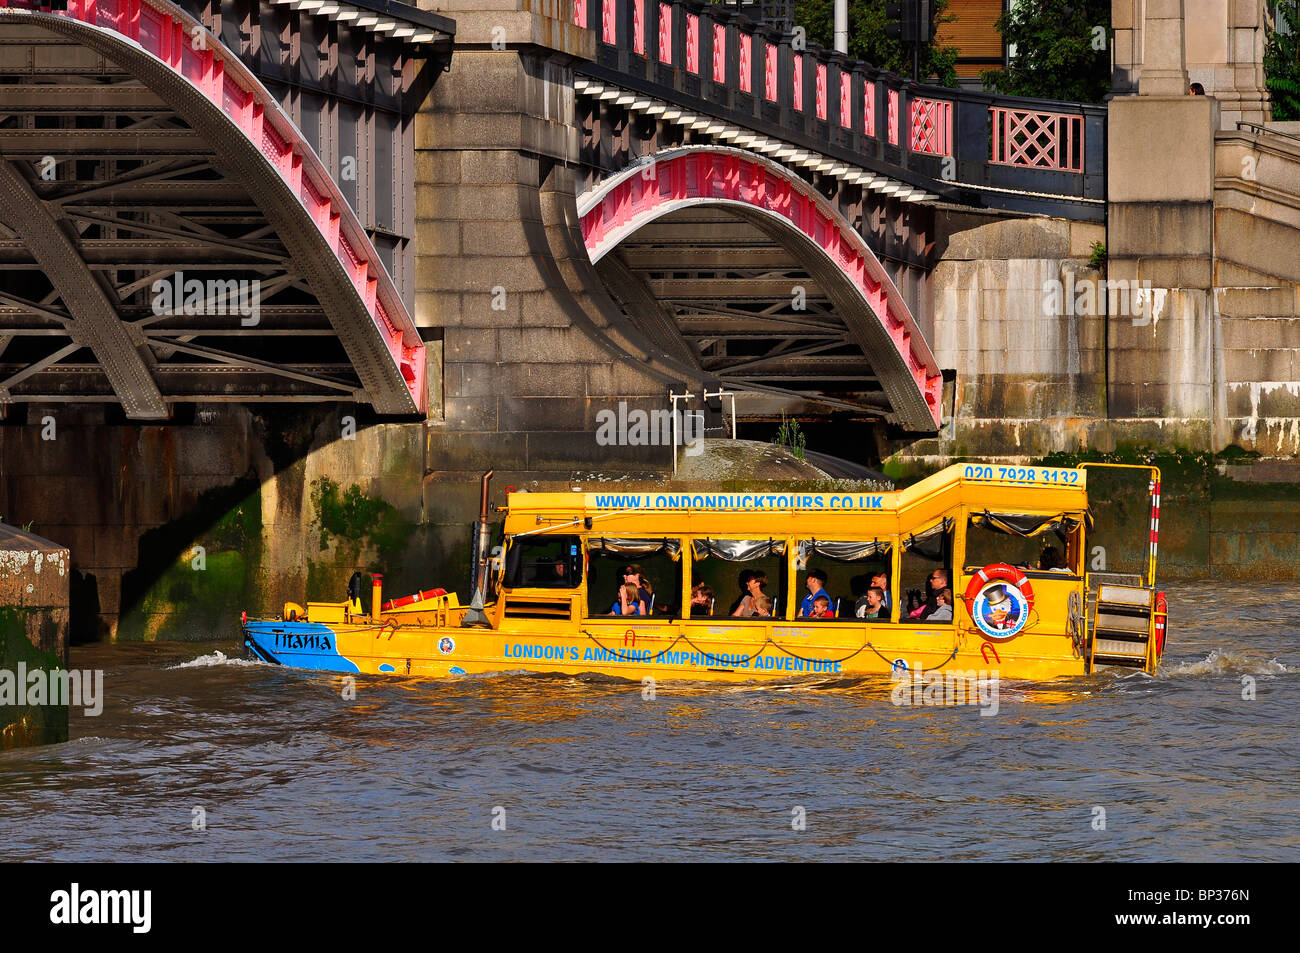 London Duck Tours - Stock Image